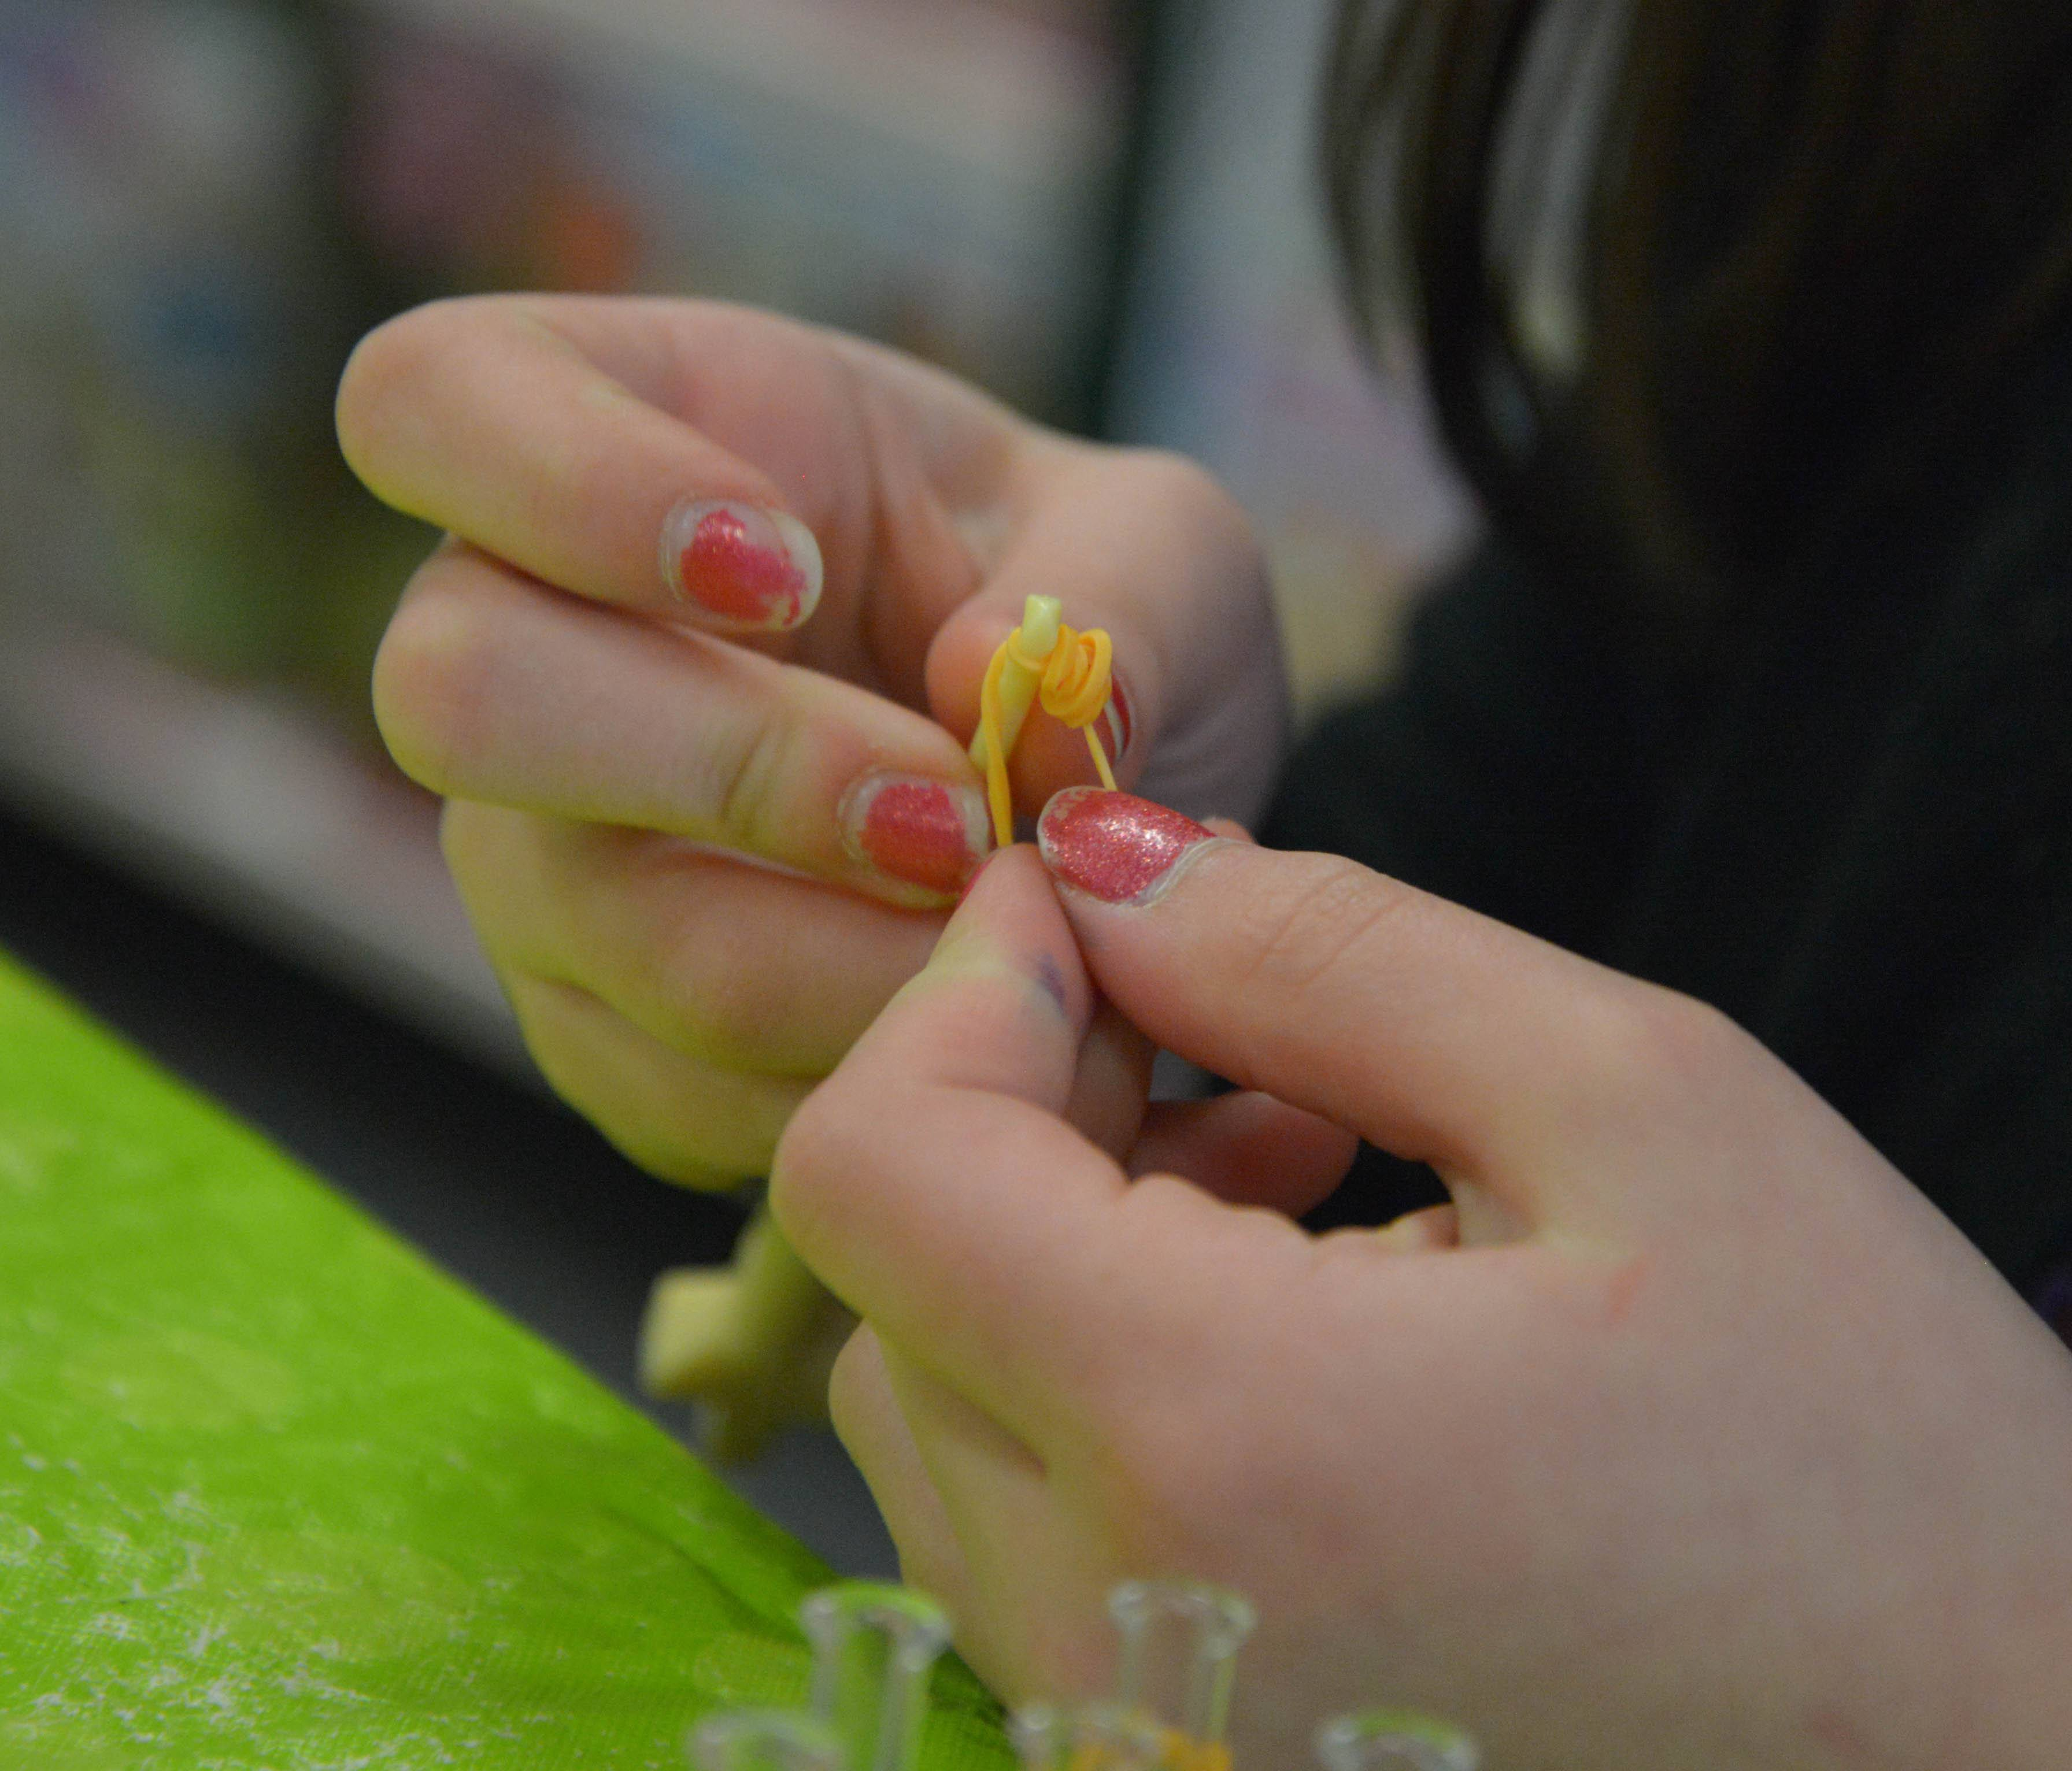 The hands of Ellery Patterson, 11, of Aurora, are hard at work on her Rainbow Loom monkey during a class at the Learning Express toy store in Naperville.